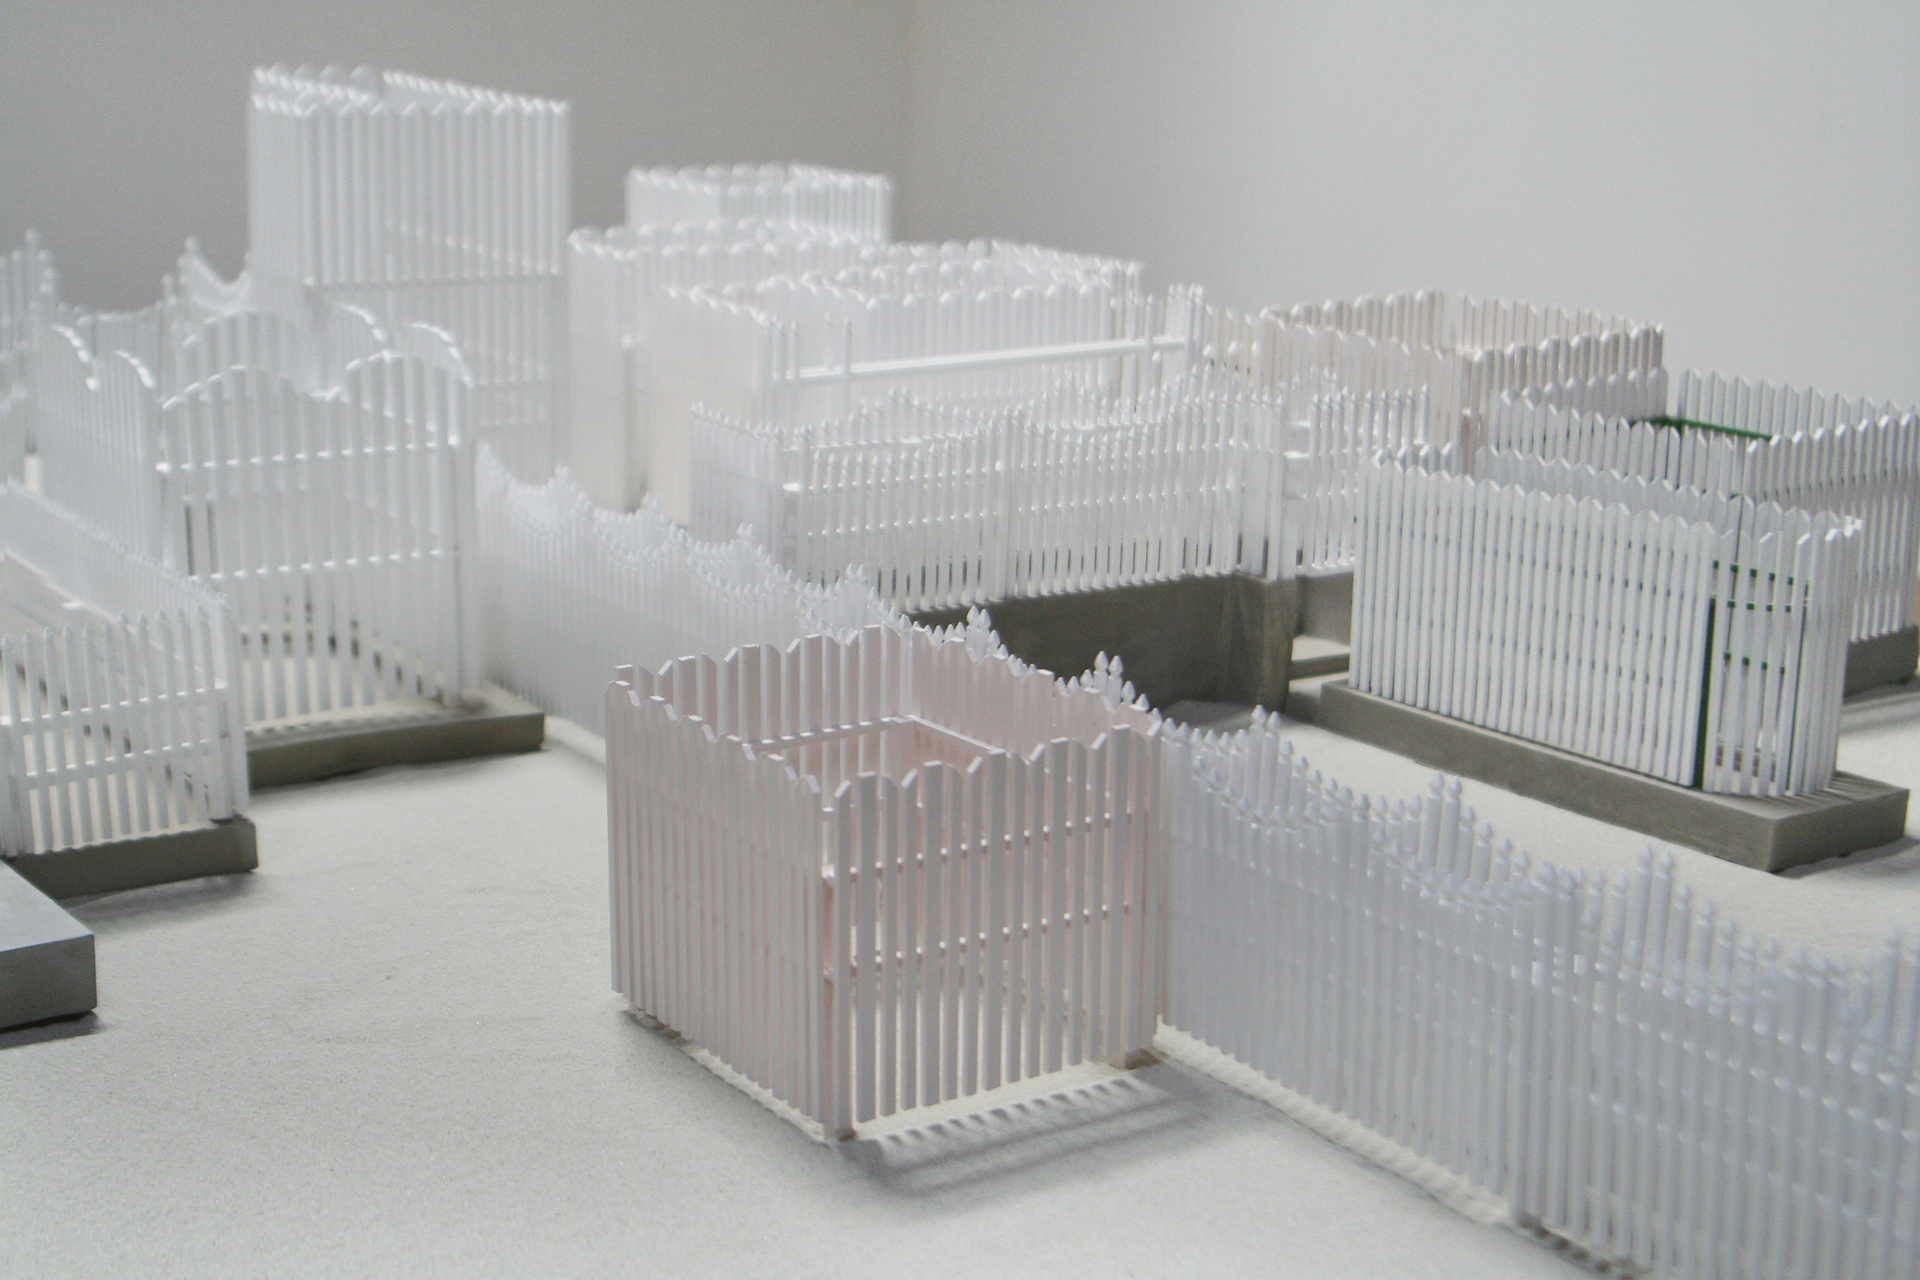 Installation view (detail),  Fence,  8 x 8 feet, wood, acrylic, cement, and sand